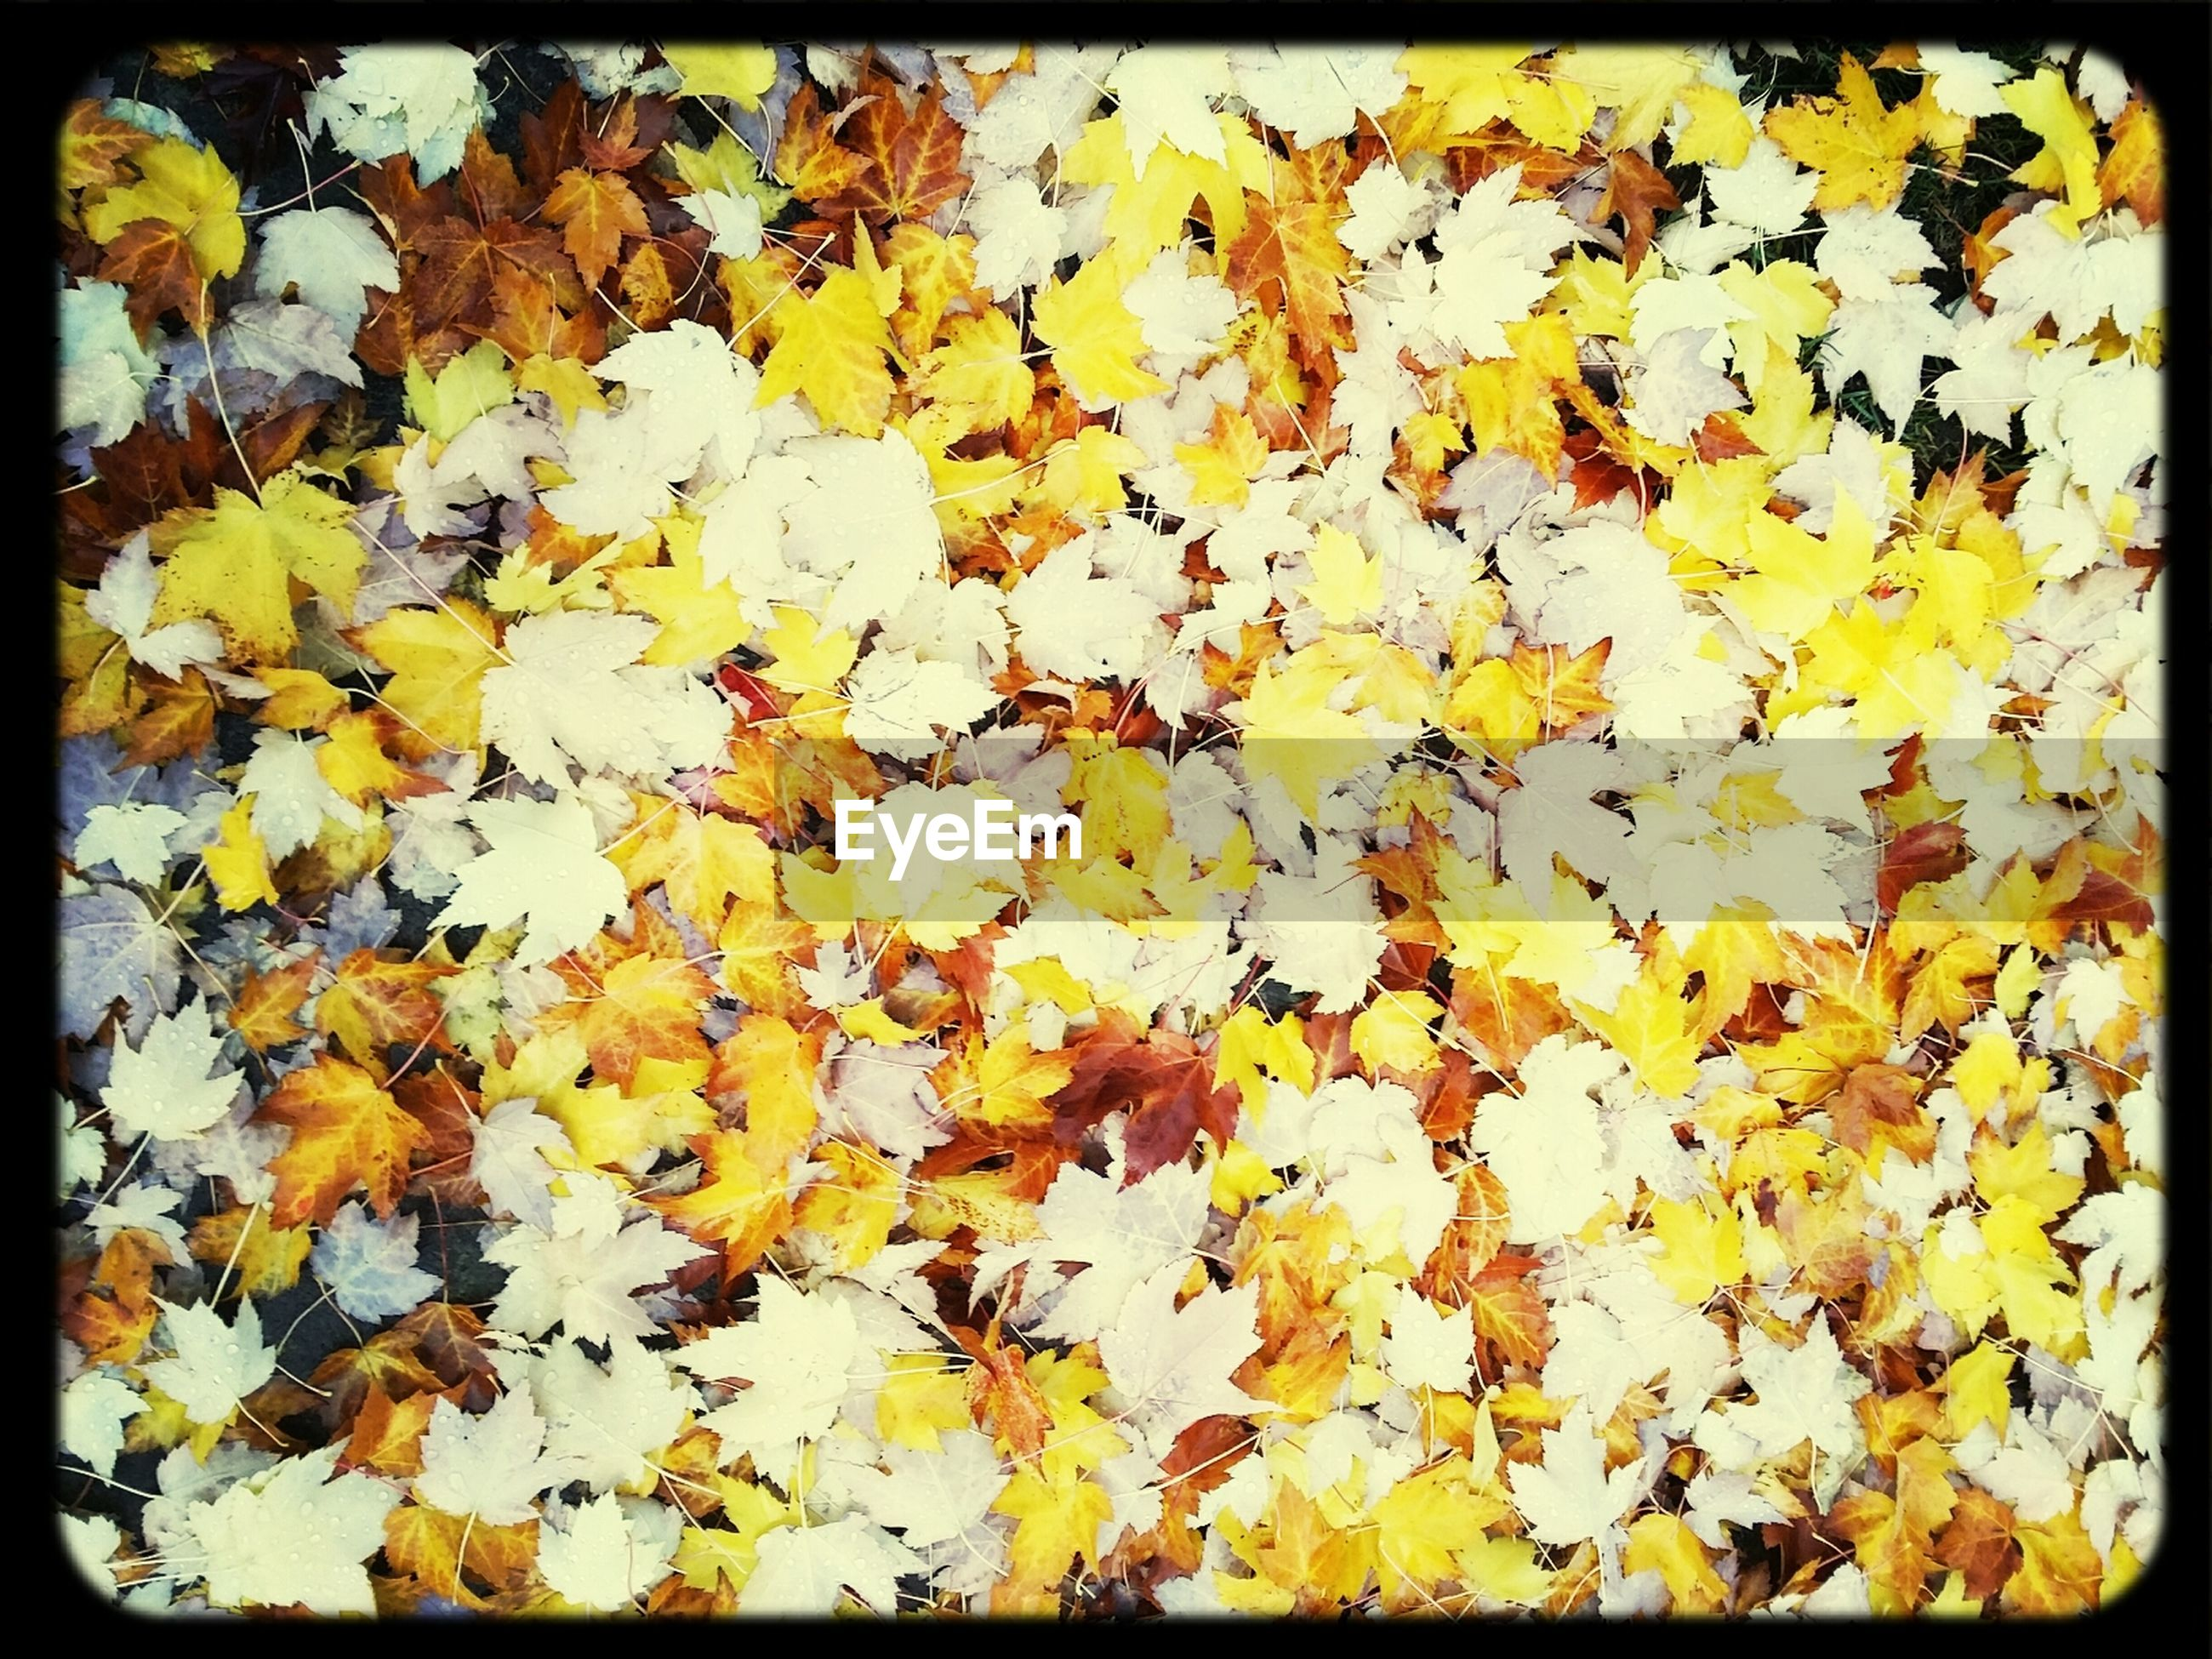 Pile of yellow leaves